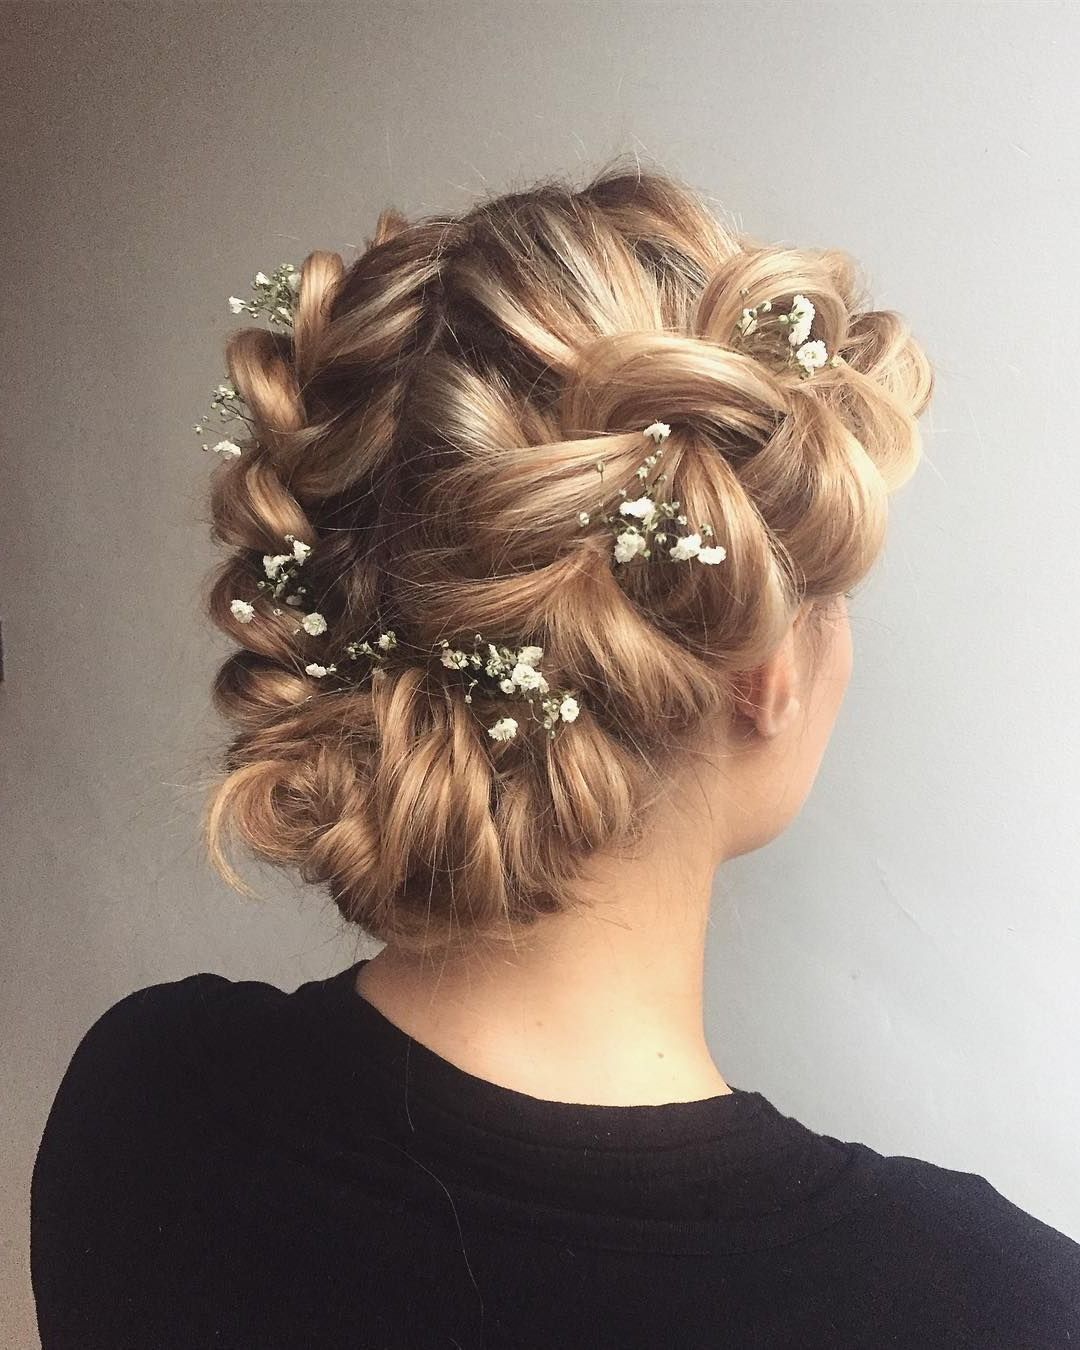 Bridal Crown Braid Hairstyle,textured Updo, Updo Wedding Pertaining To Newest Messy Crown Braided Hairstyles (View 6 of 20)